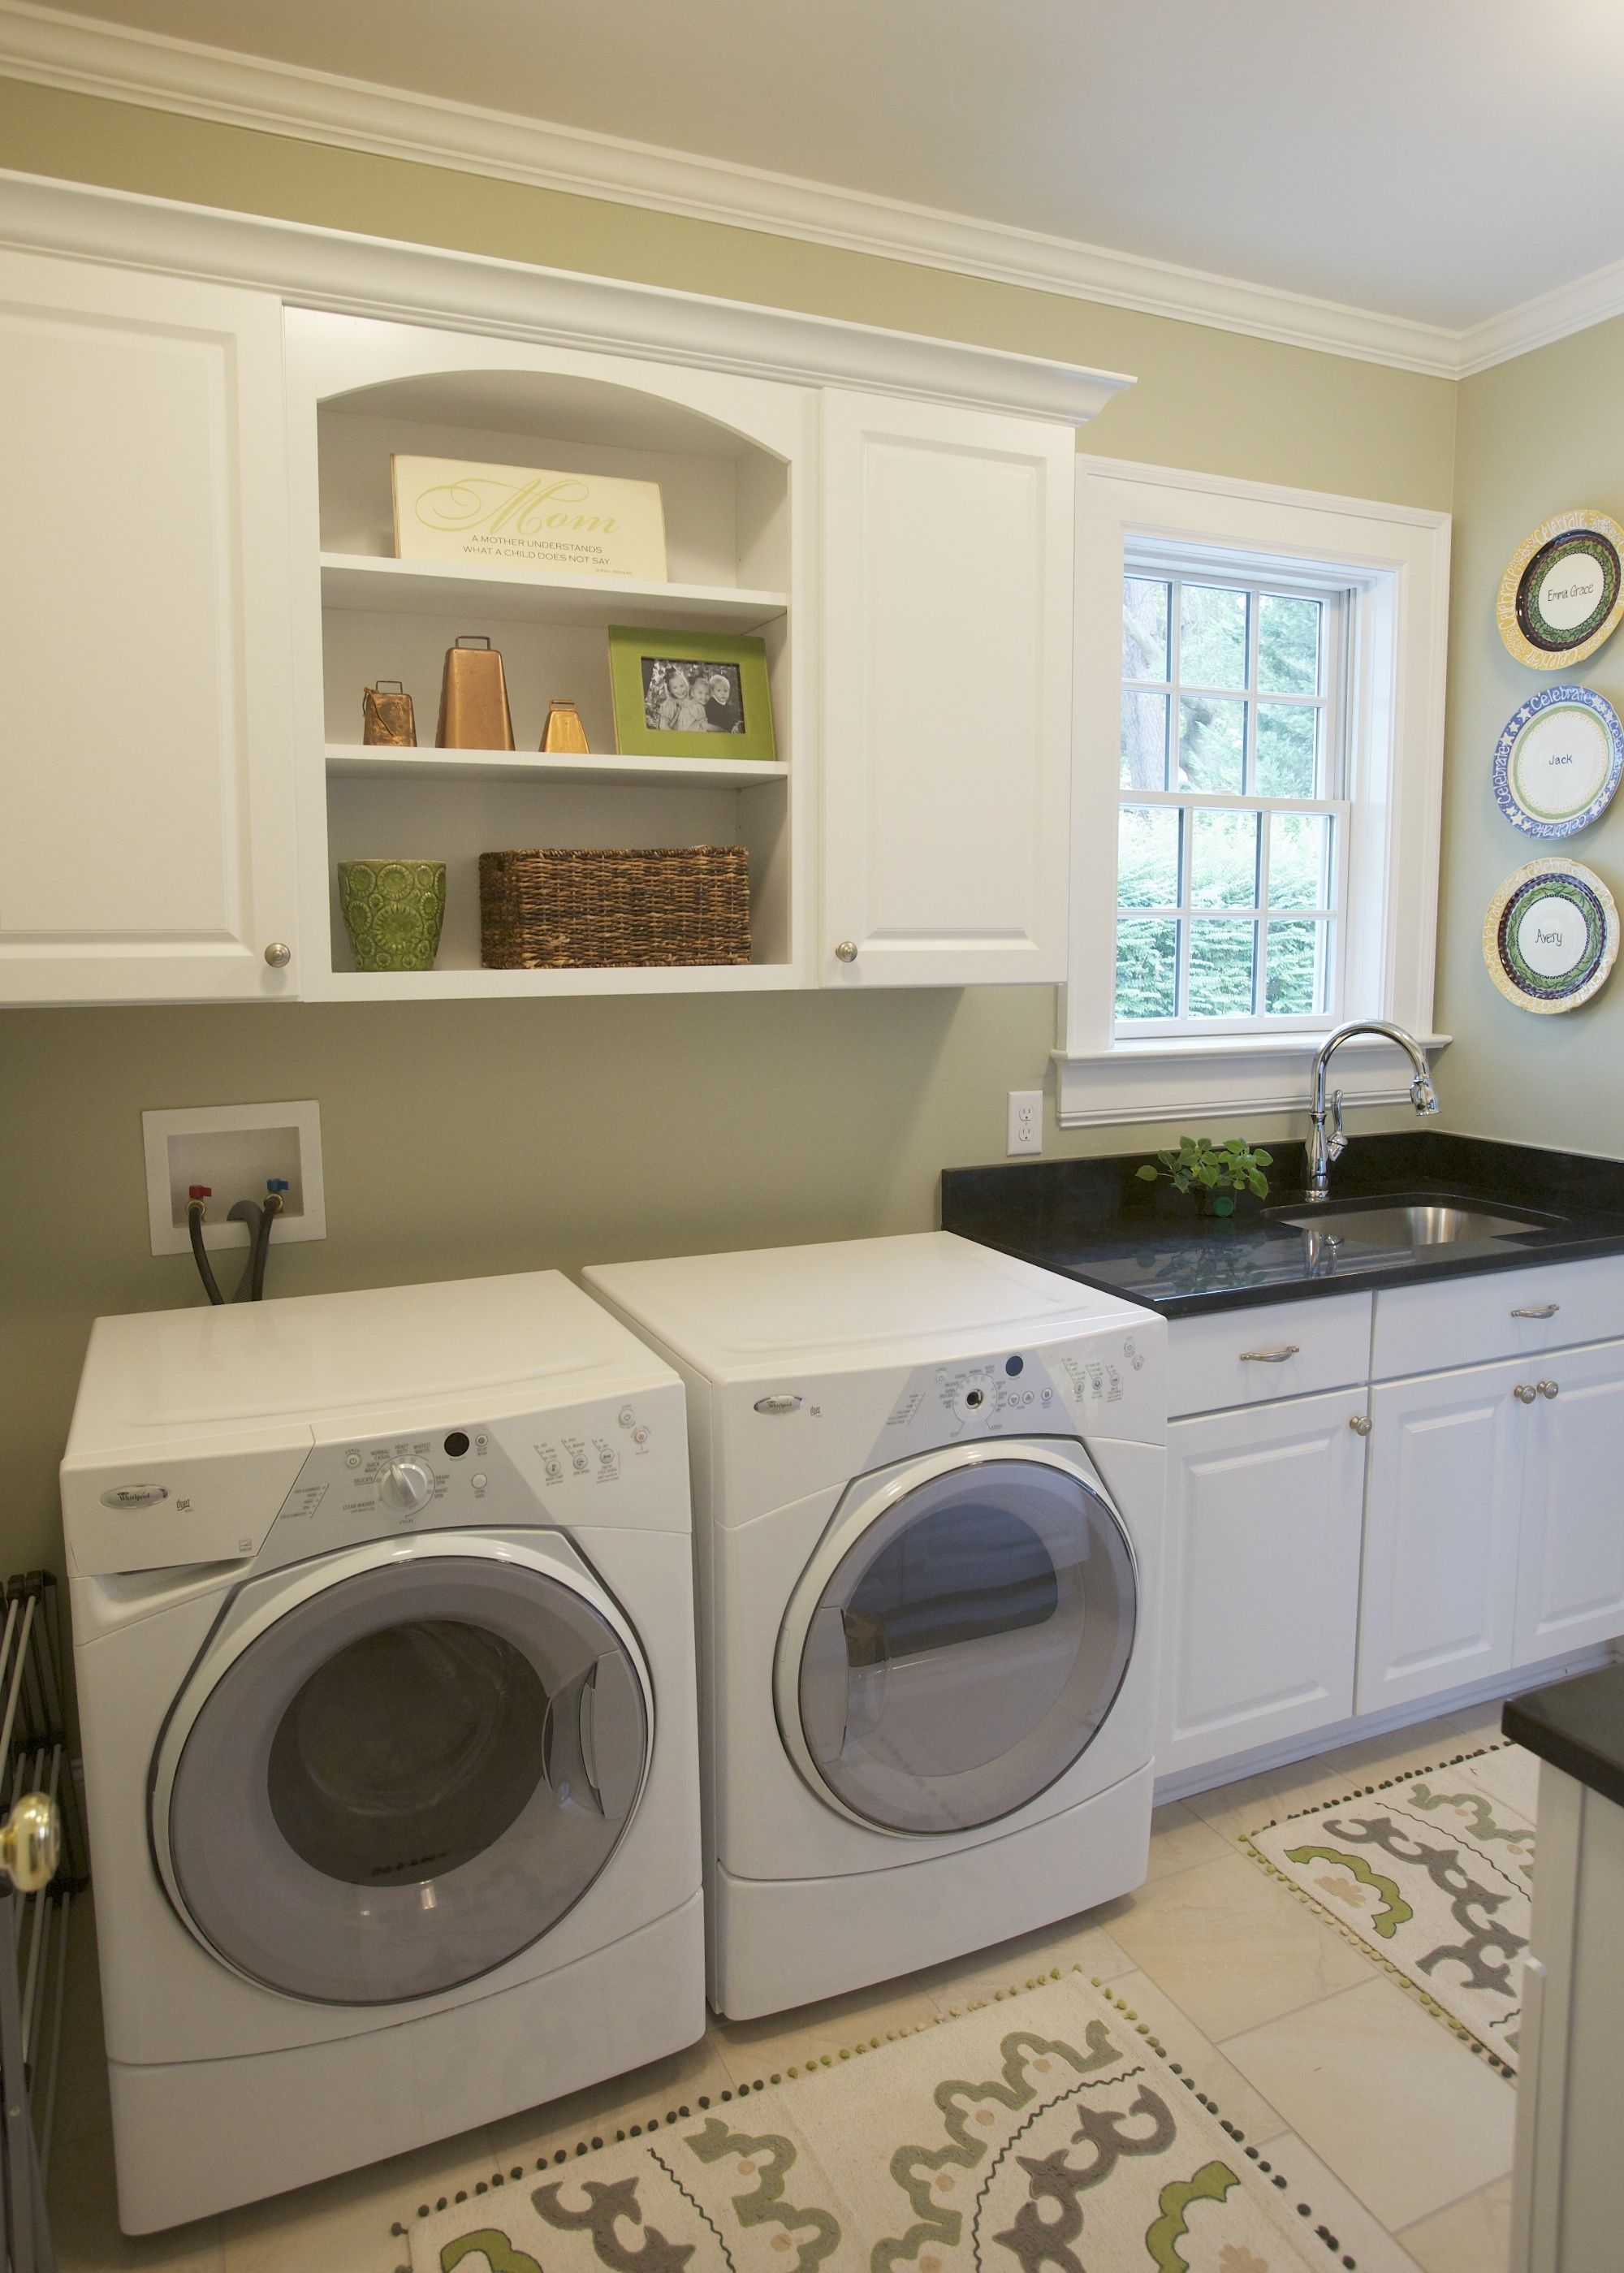 1000+ images about Laundry Room Remodel on Pinterest | Washing ...